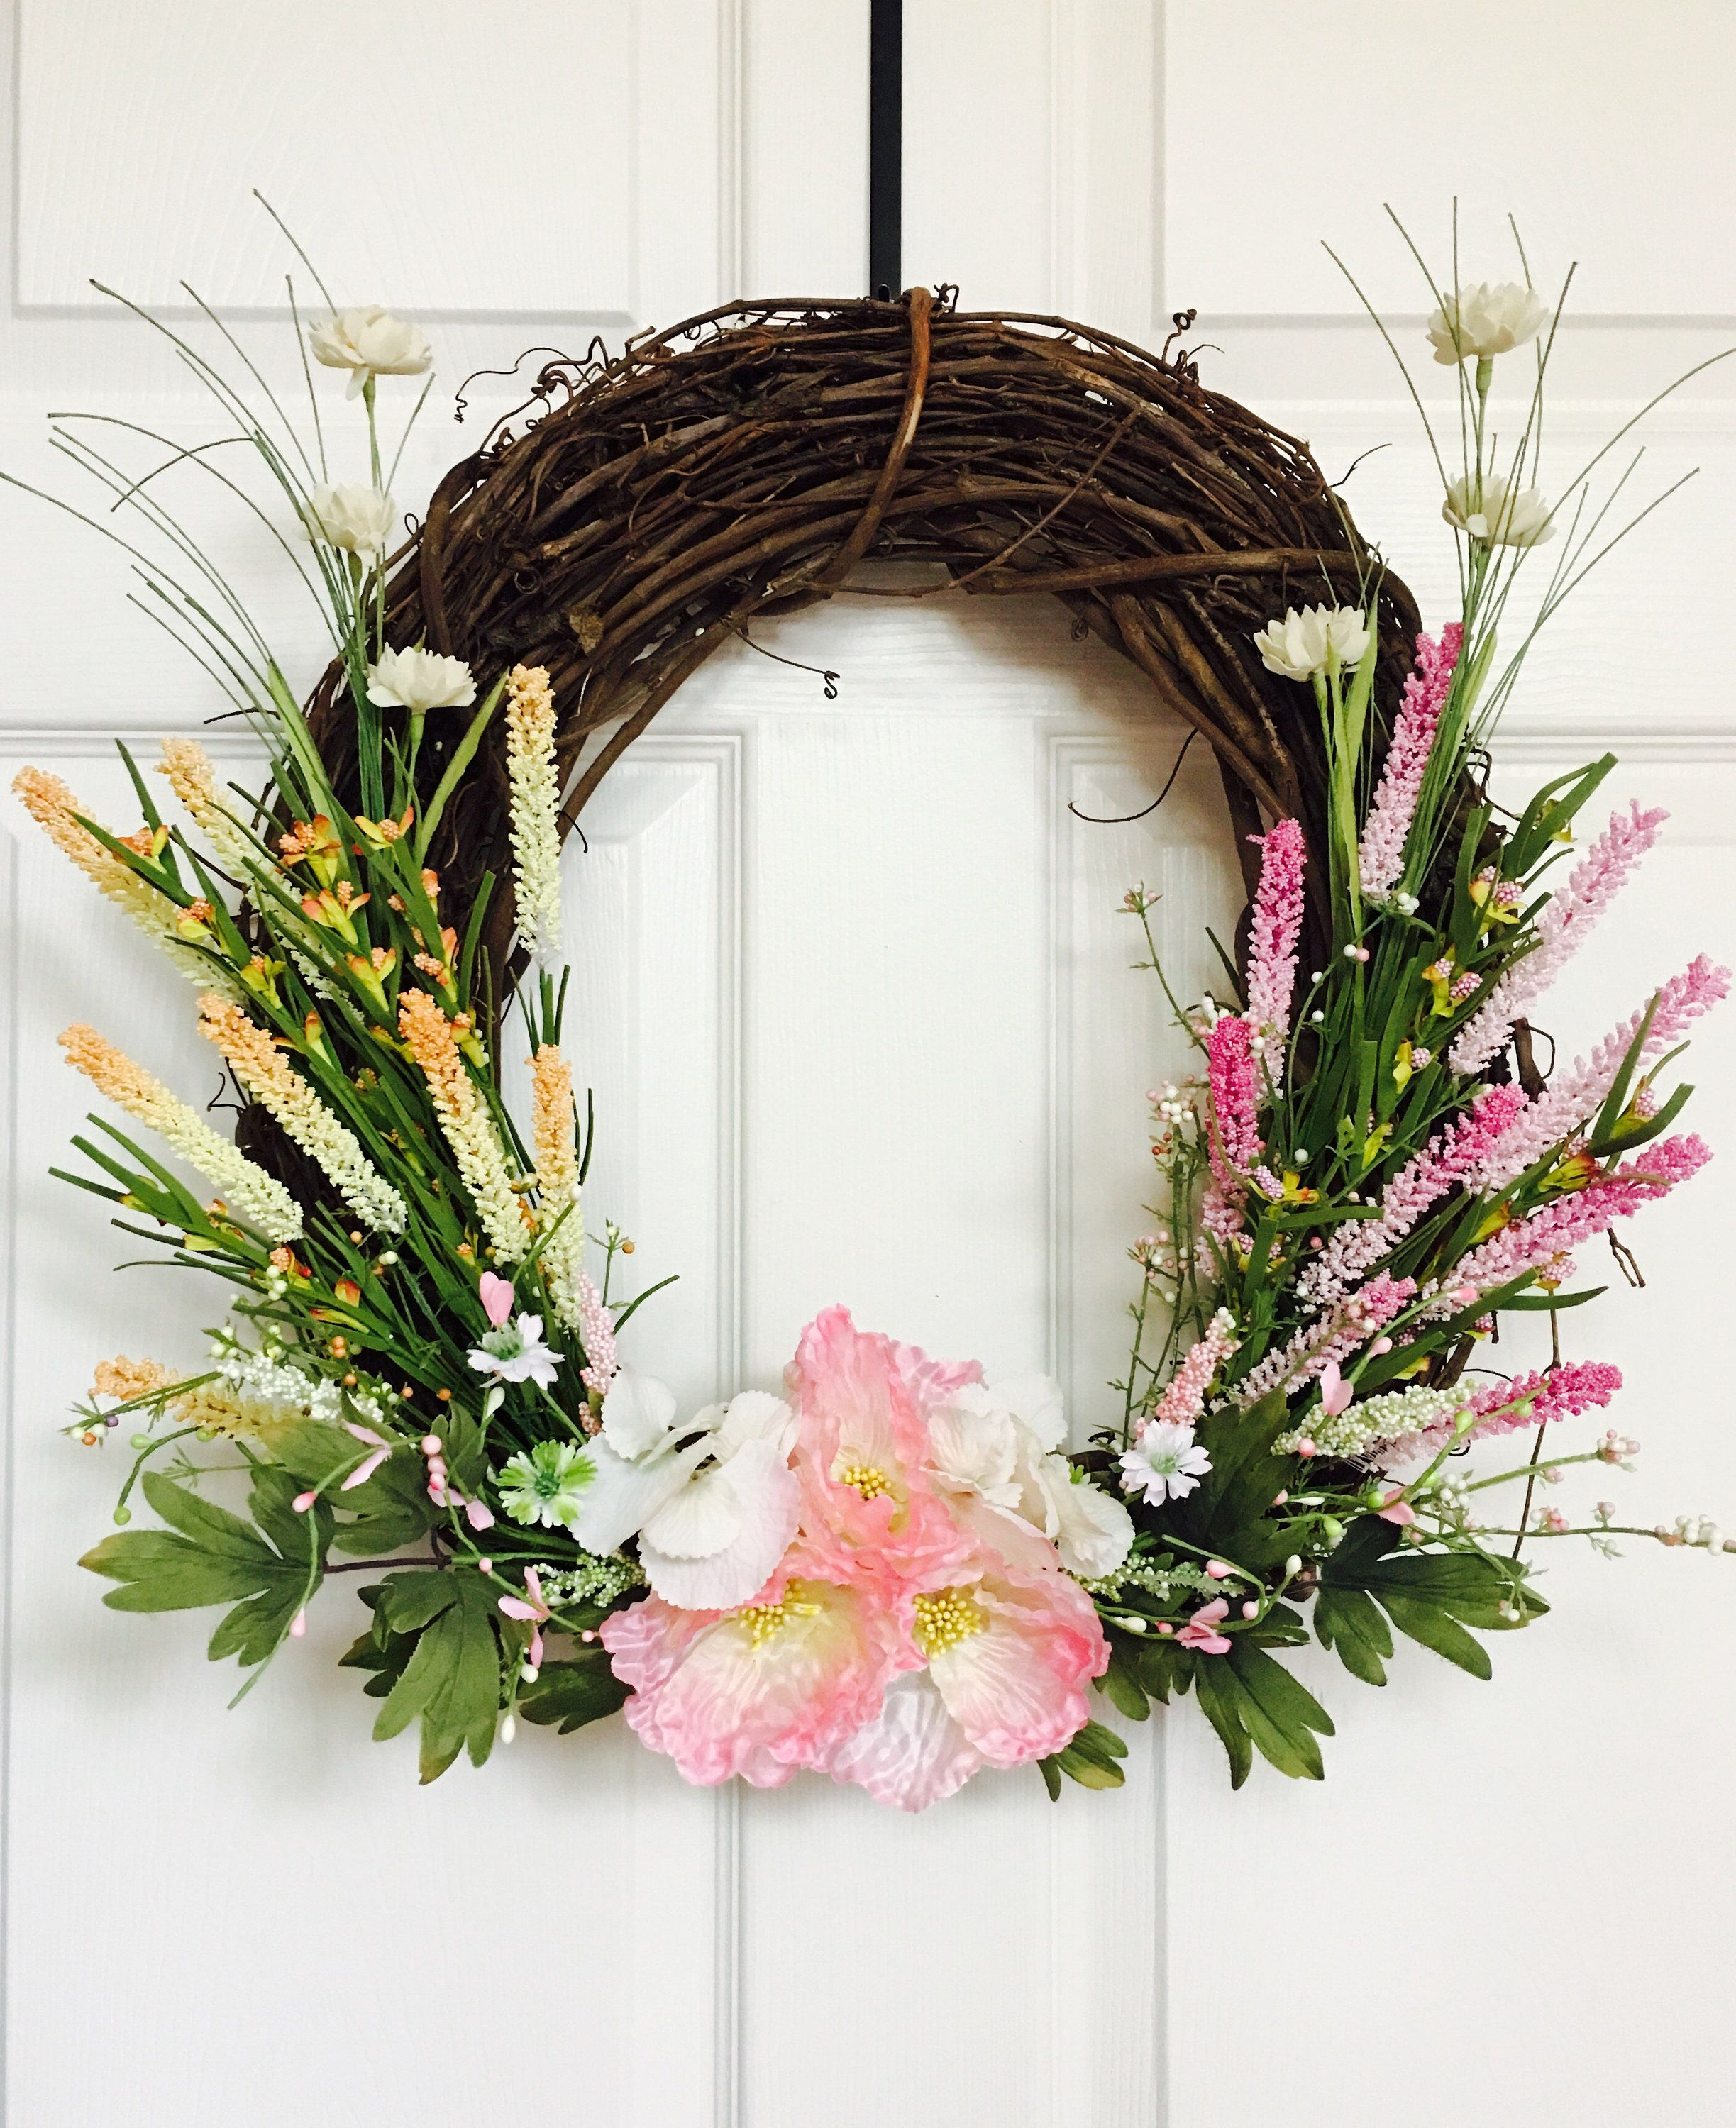 Items Similar To Summer Wreath For Front Door,Flower Berry Wreath,Front